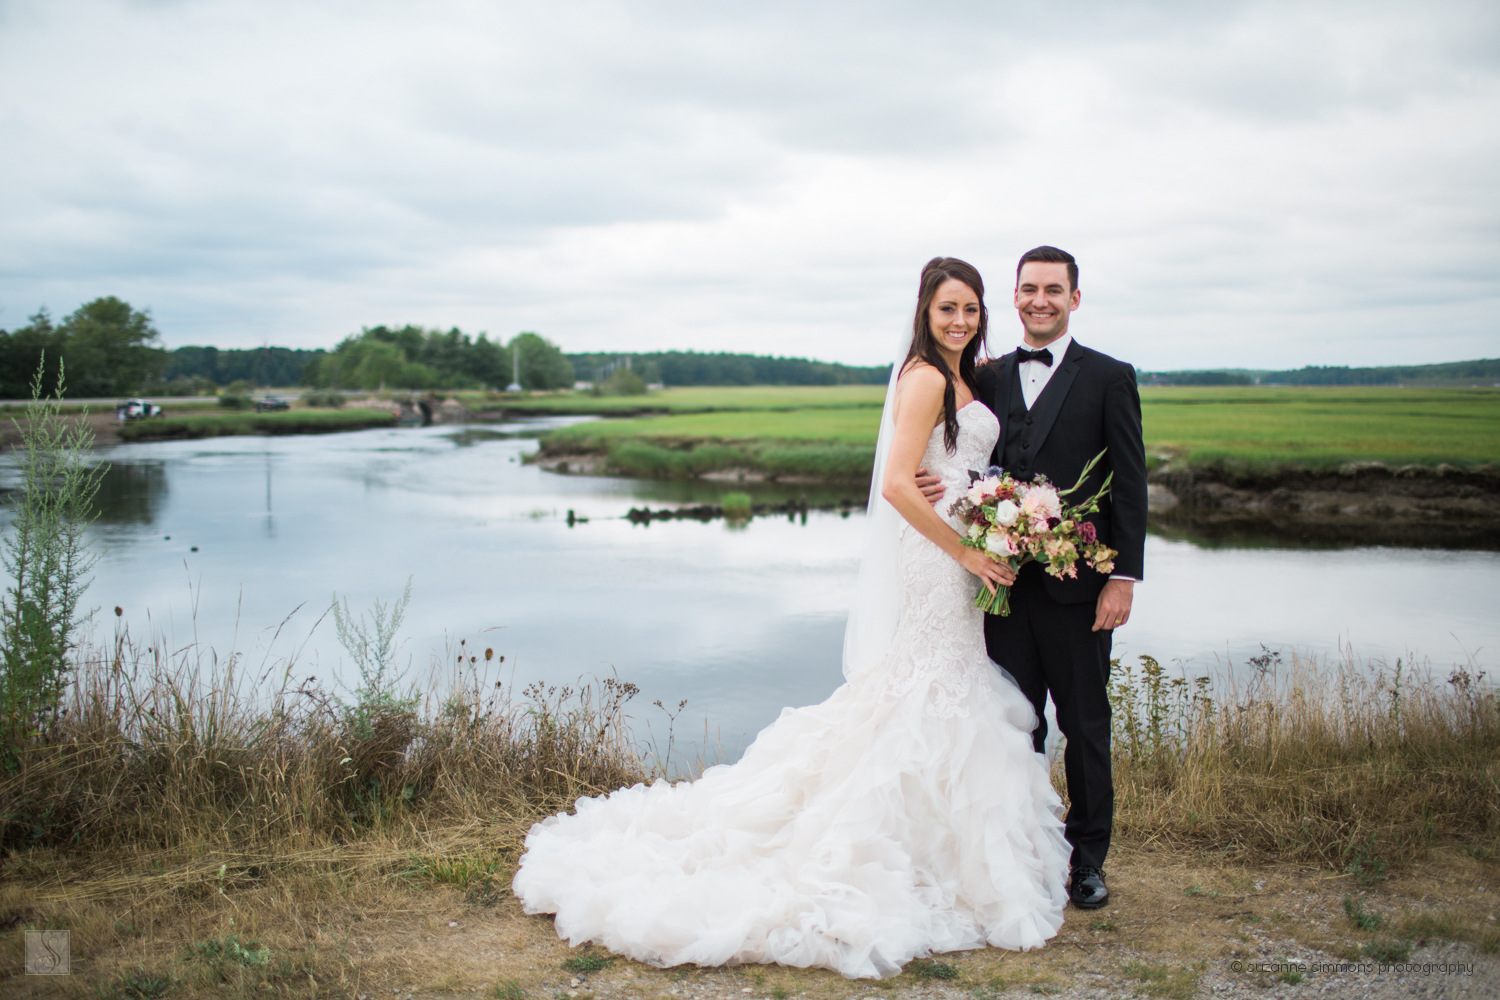 Formal Portraits Along the Marsh